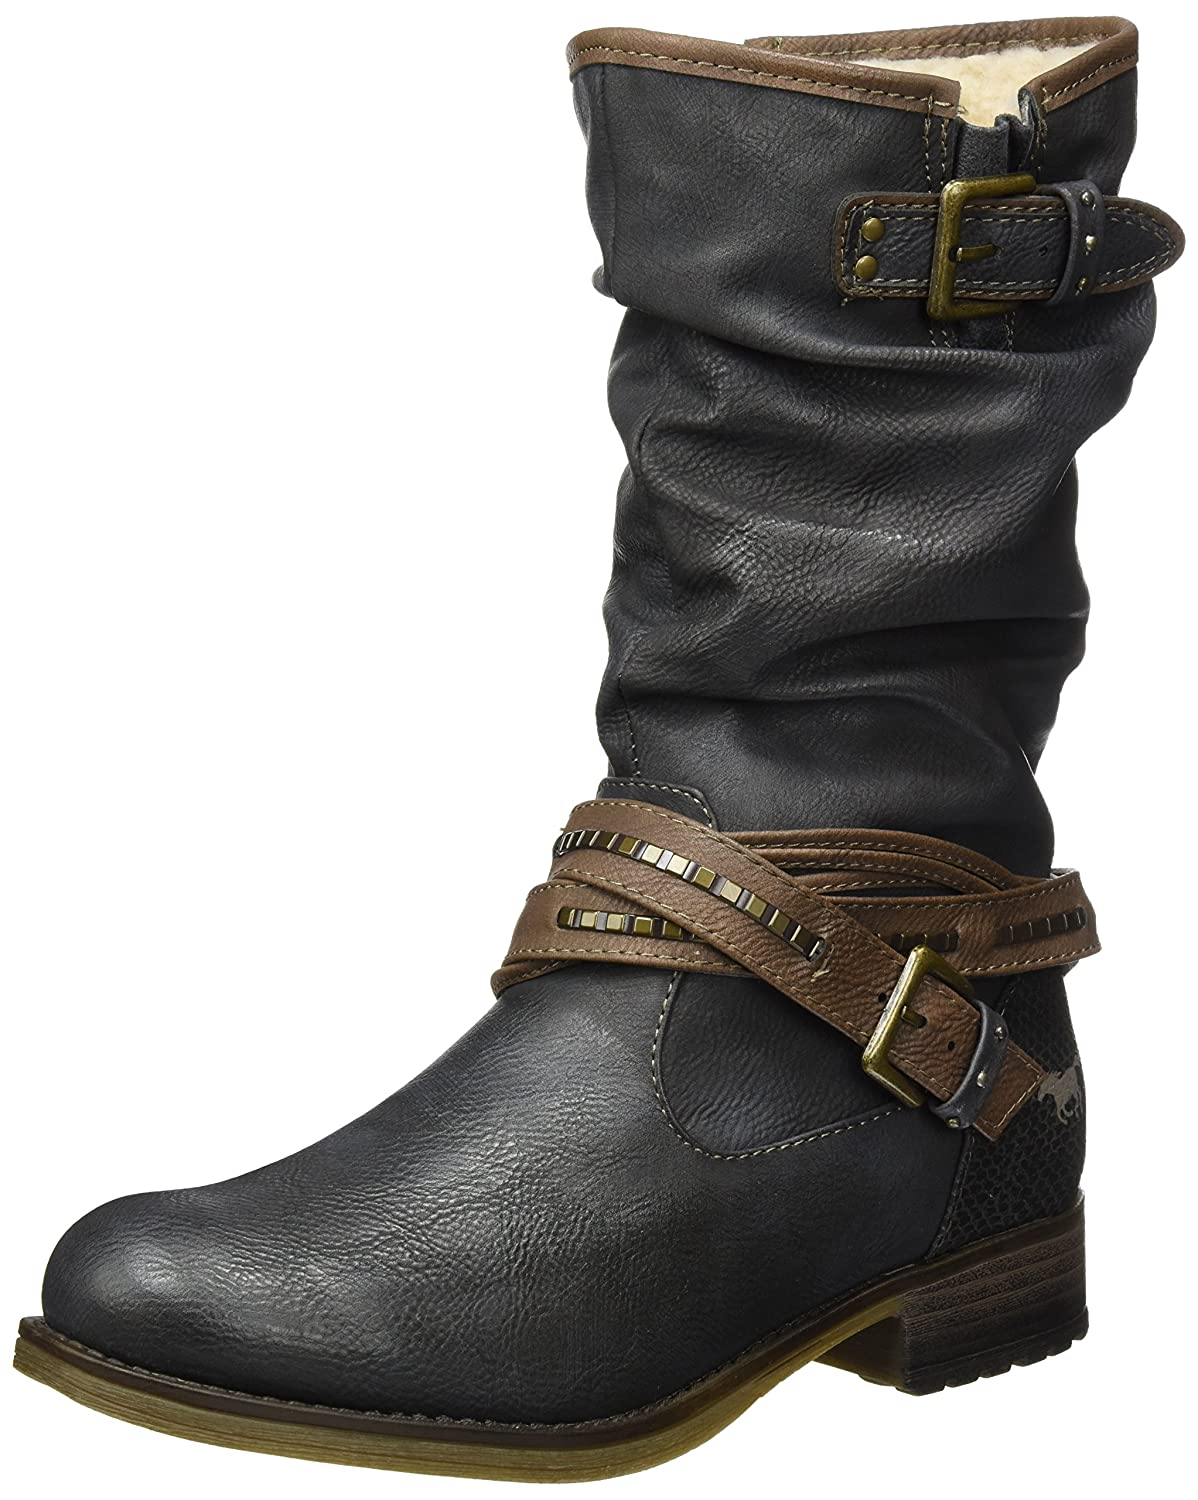 Mustang 1139-624-259, Bottes (Graphit) Femme, Mustang Gris Gris Gris (Graphit) 43d9a2e - fast-weightloss-diet.space